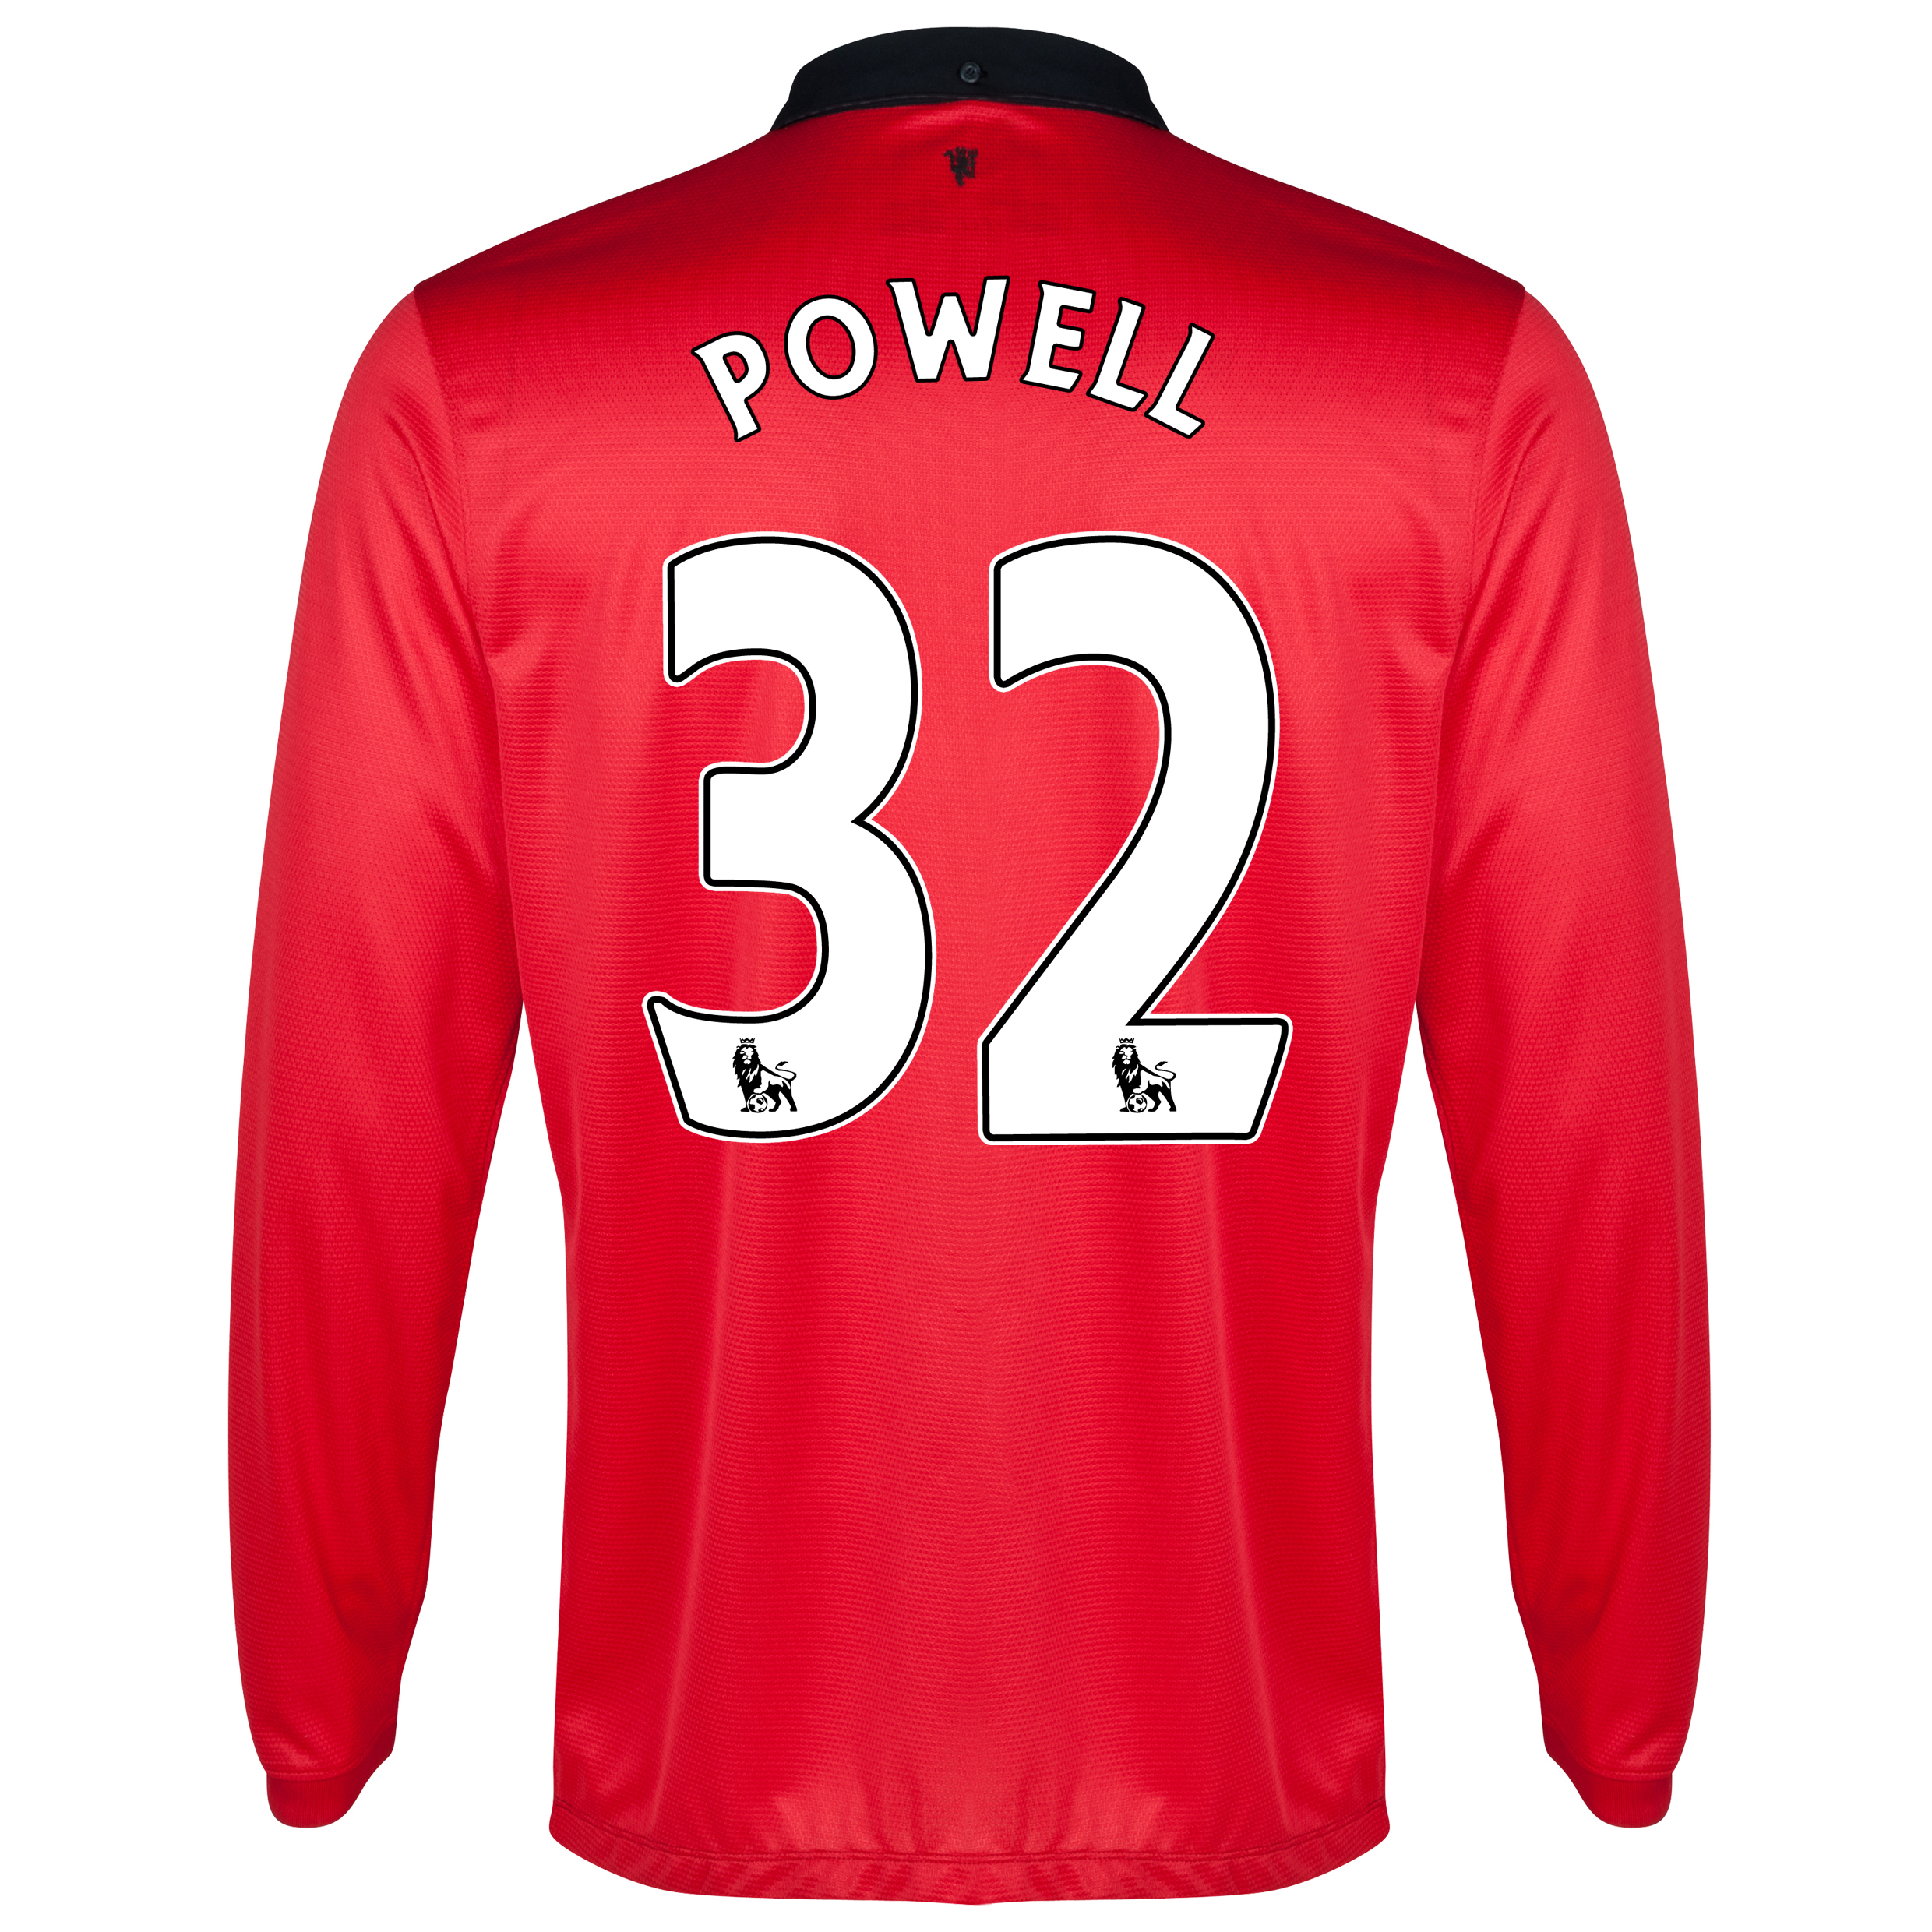 Manchester United Home Shirt 2013/14 - Long Sleeved with Powell 25 printing